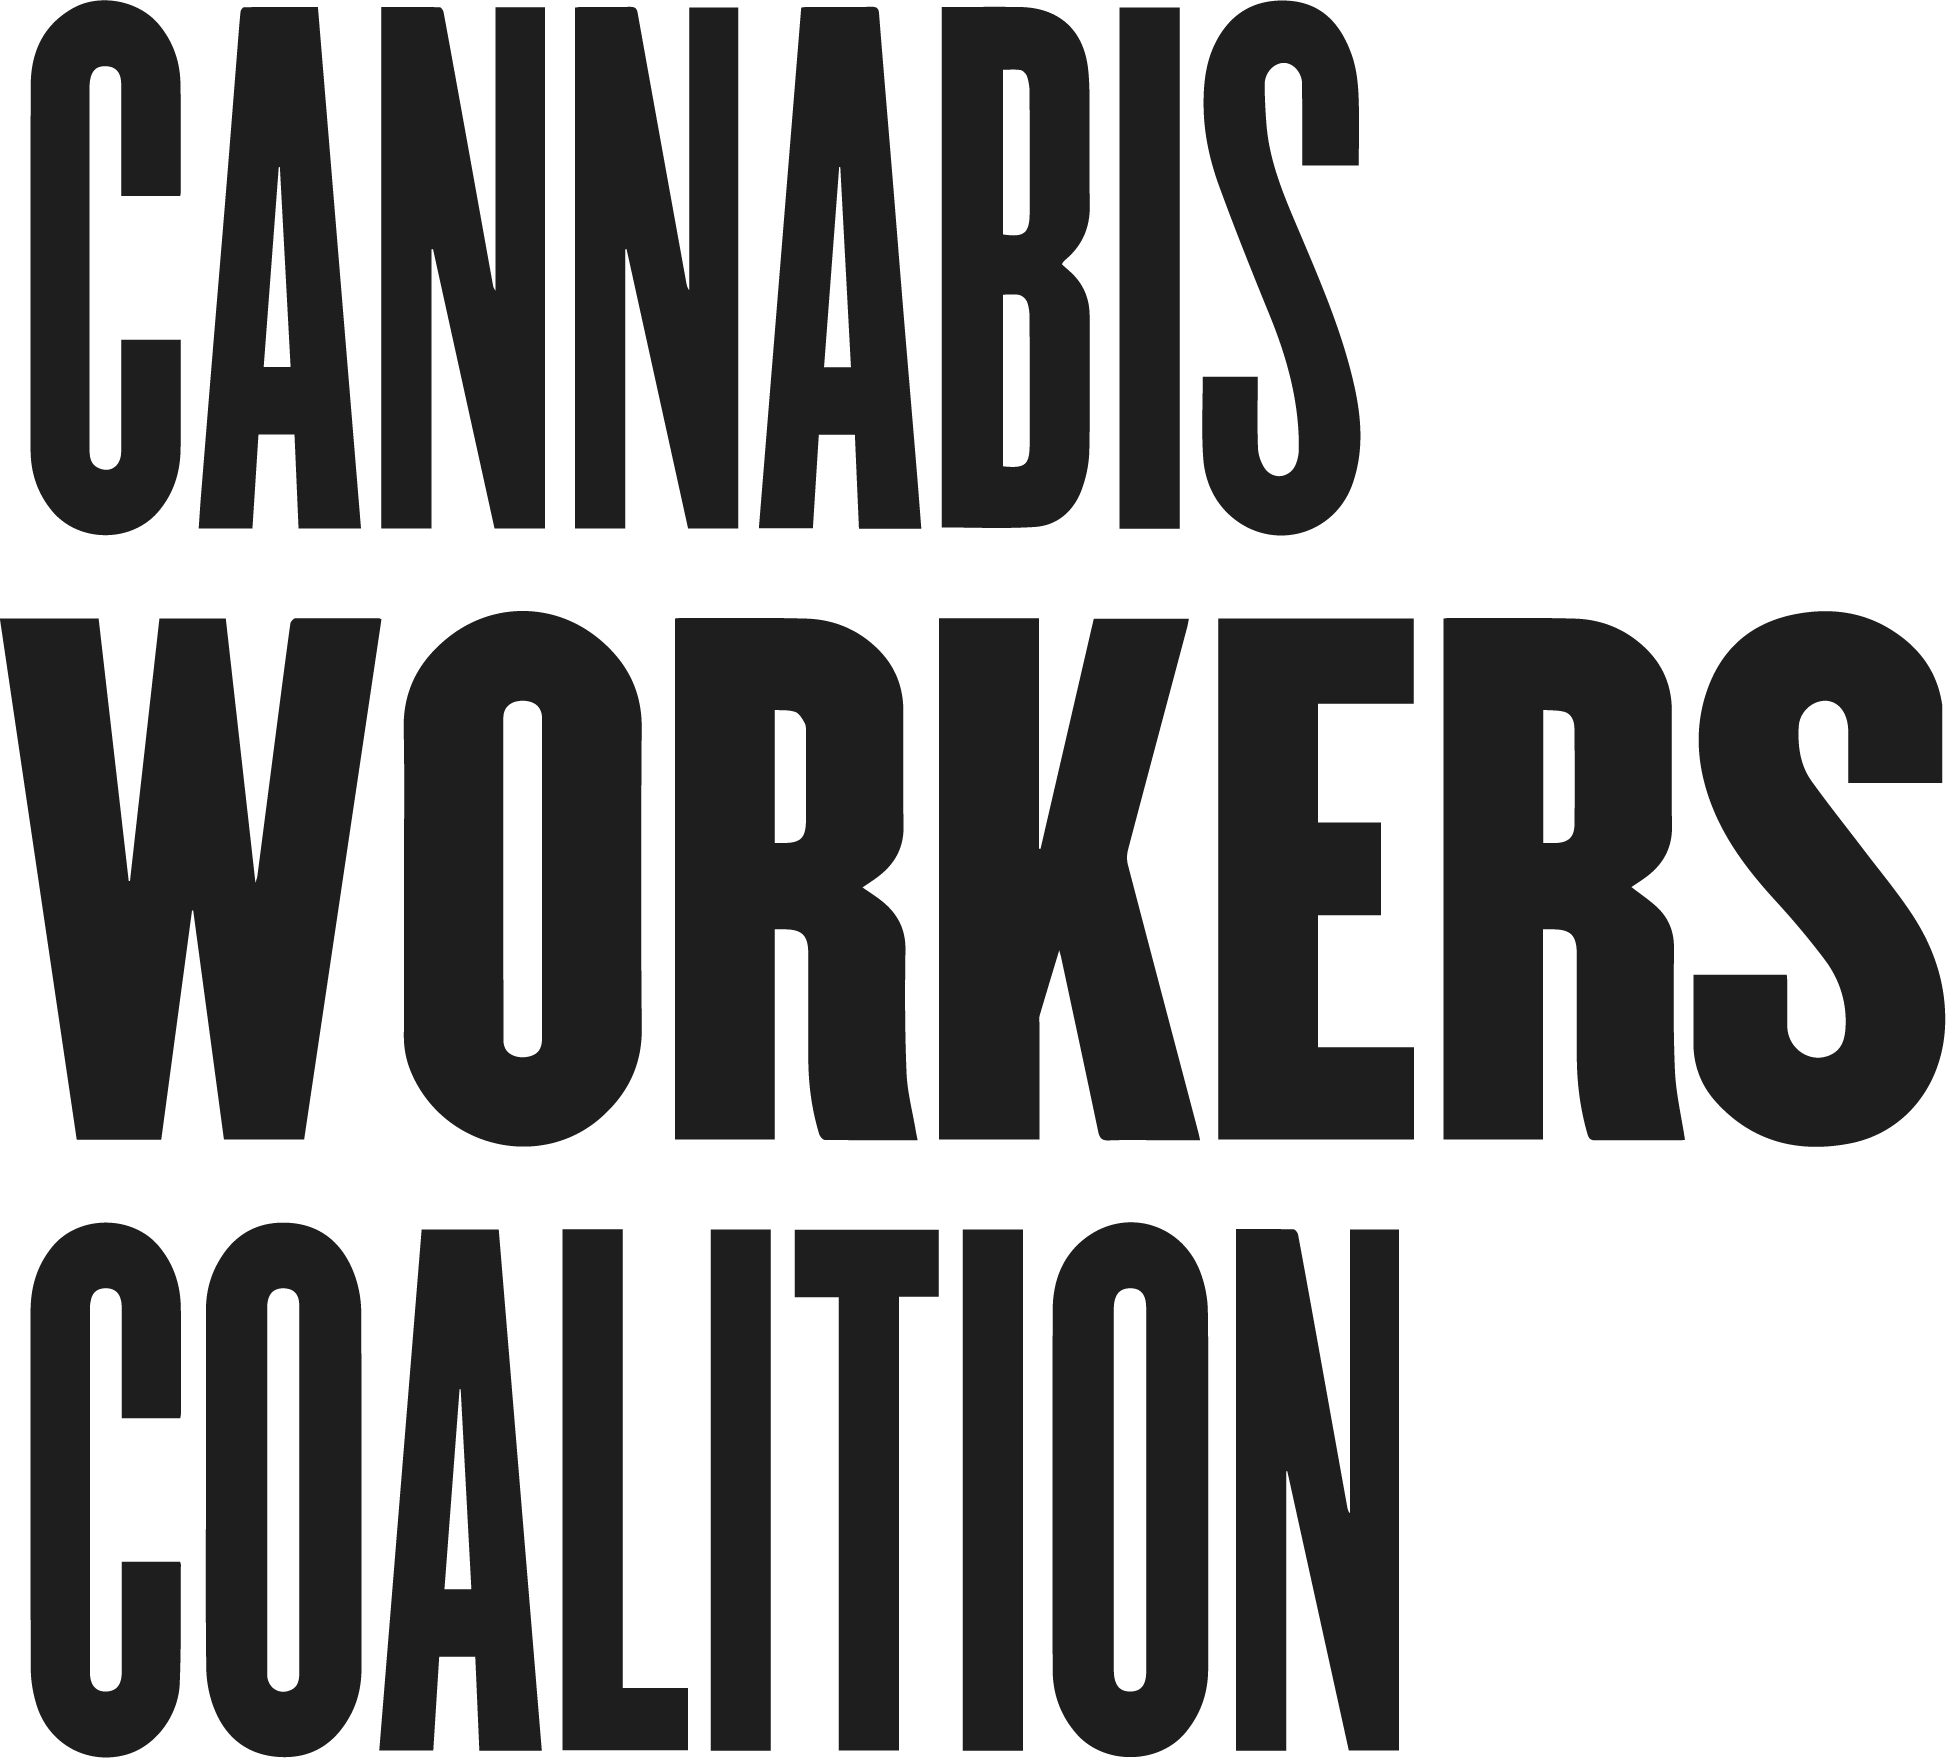 Cannabis Workers Coalition